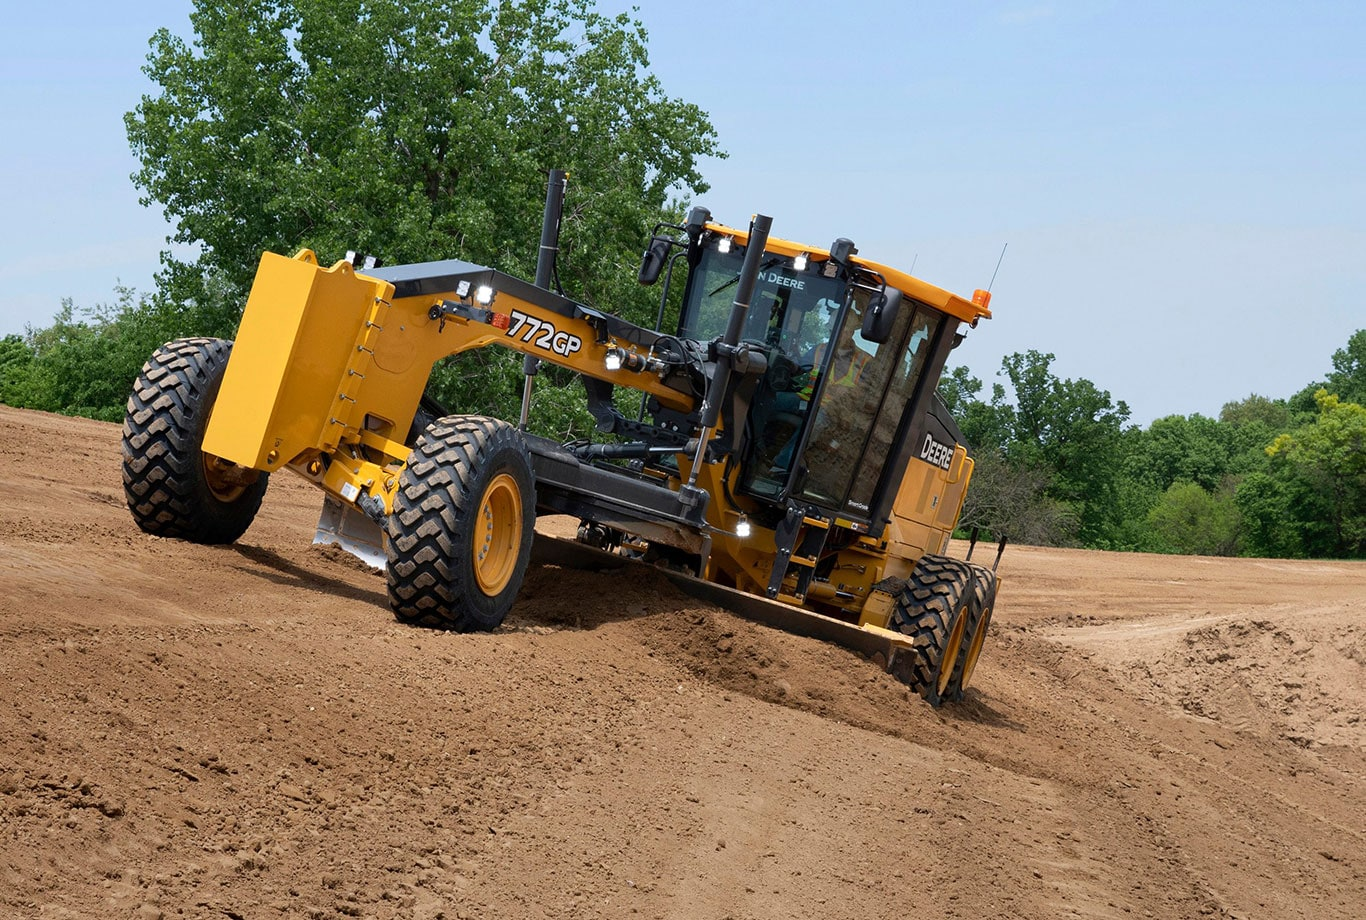 John Deere SmartGrade technology delivers the first-of-its-kind mastless Topcon 3D integrated grade control to G-Series motor graders